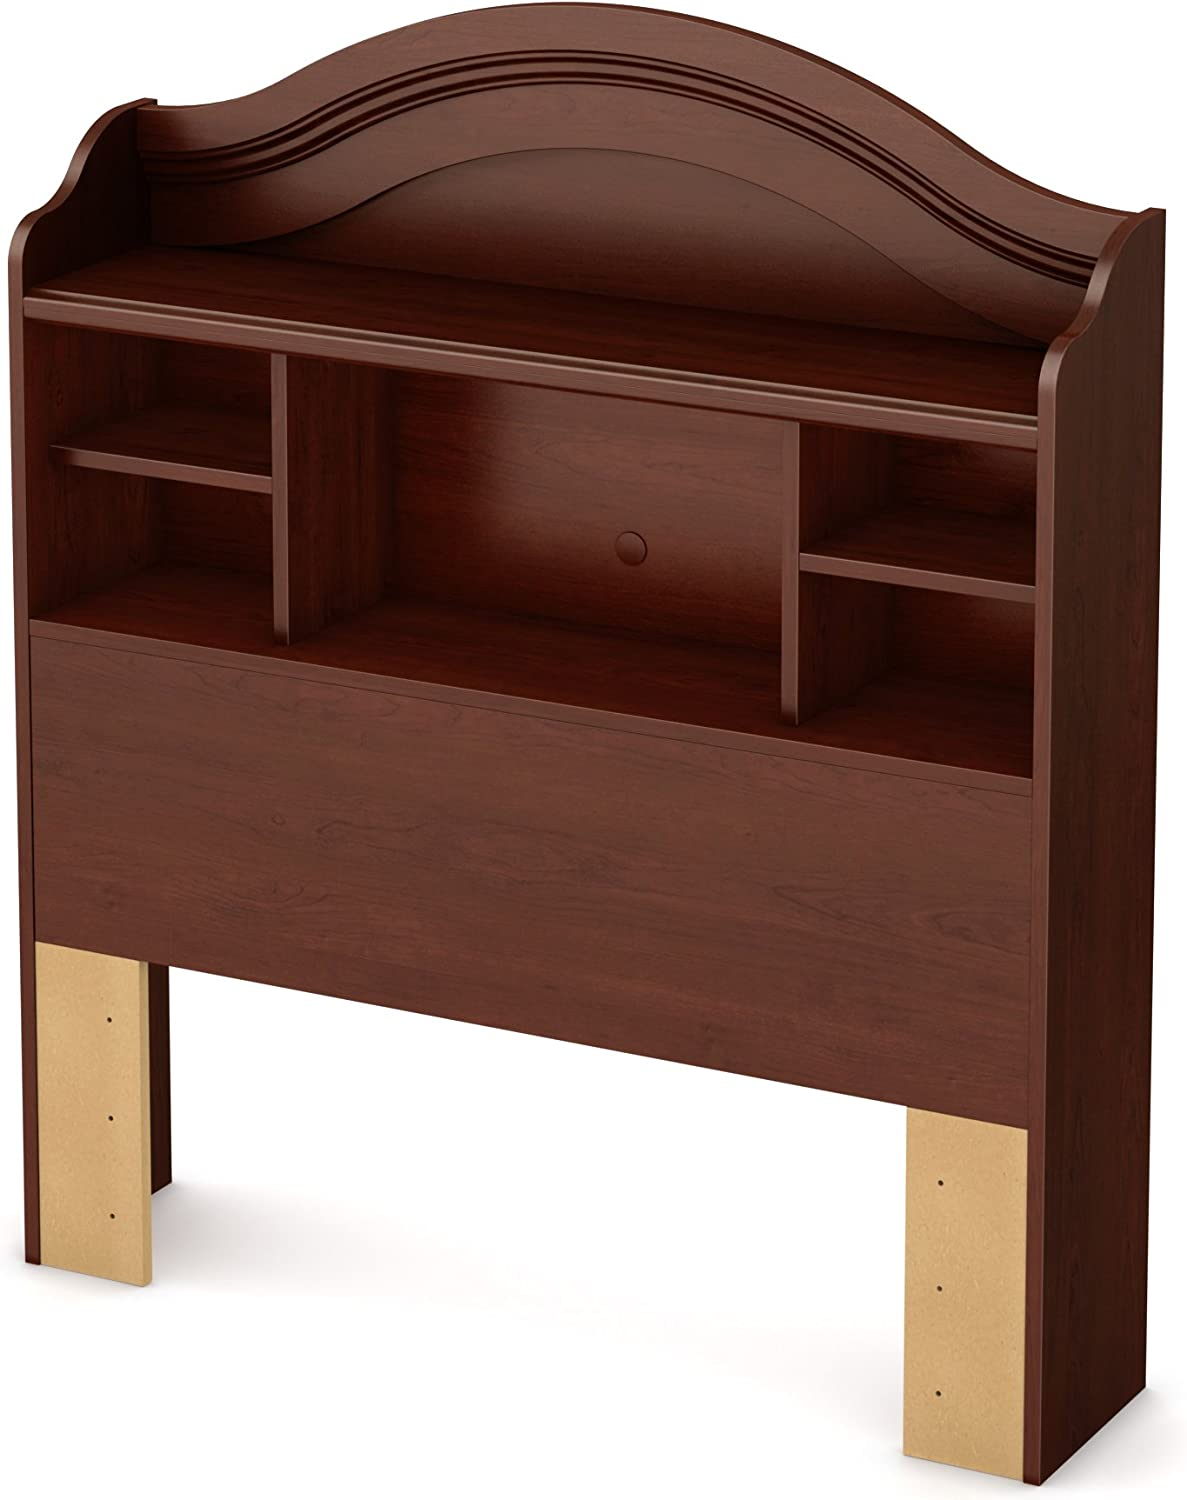 South Shore Summer Breeze Twin Bookcase Headboard, 39-Inch, Royal Cherry